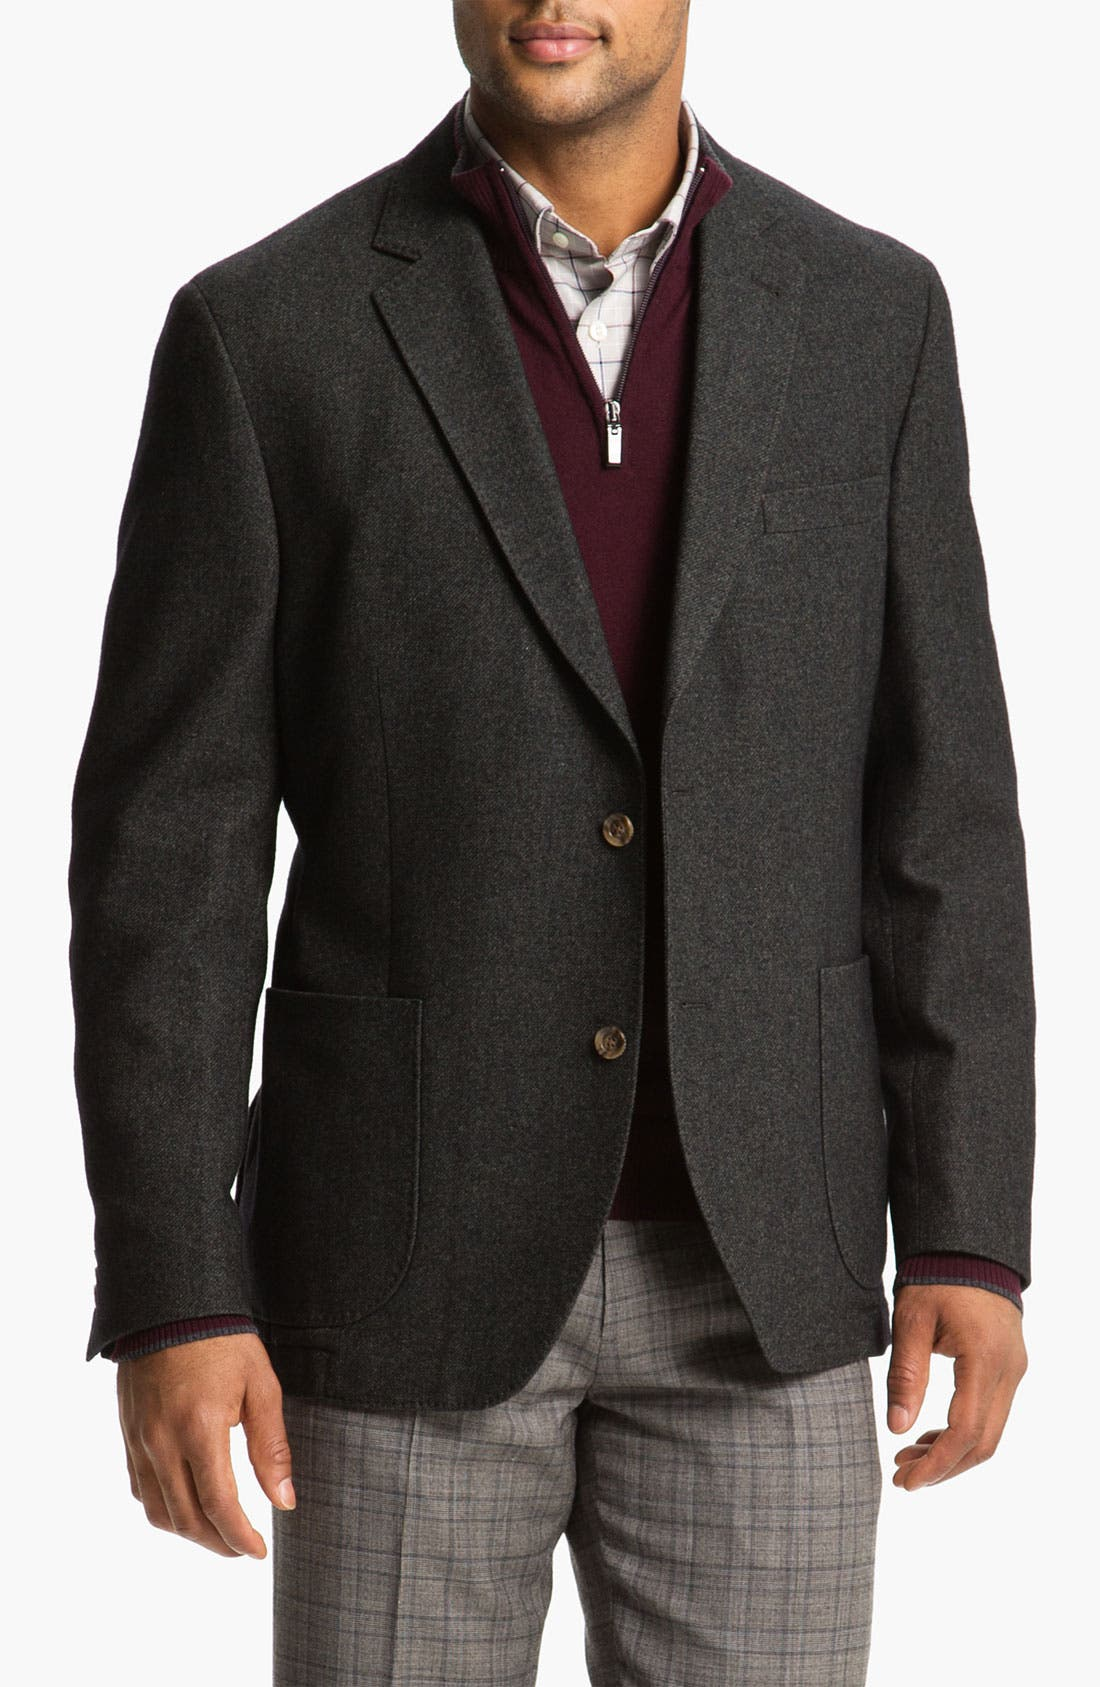 Main Image - Kroon 'Bono' Wool Blend Sportcoat